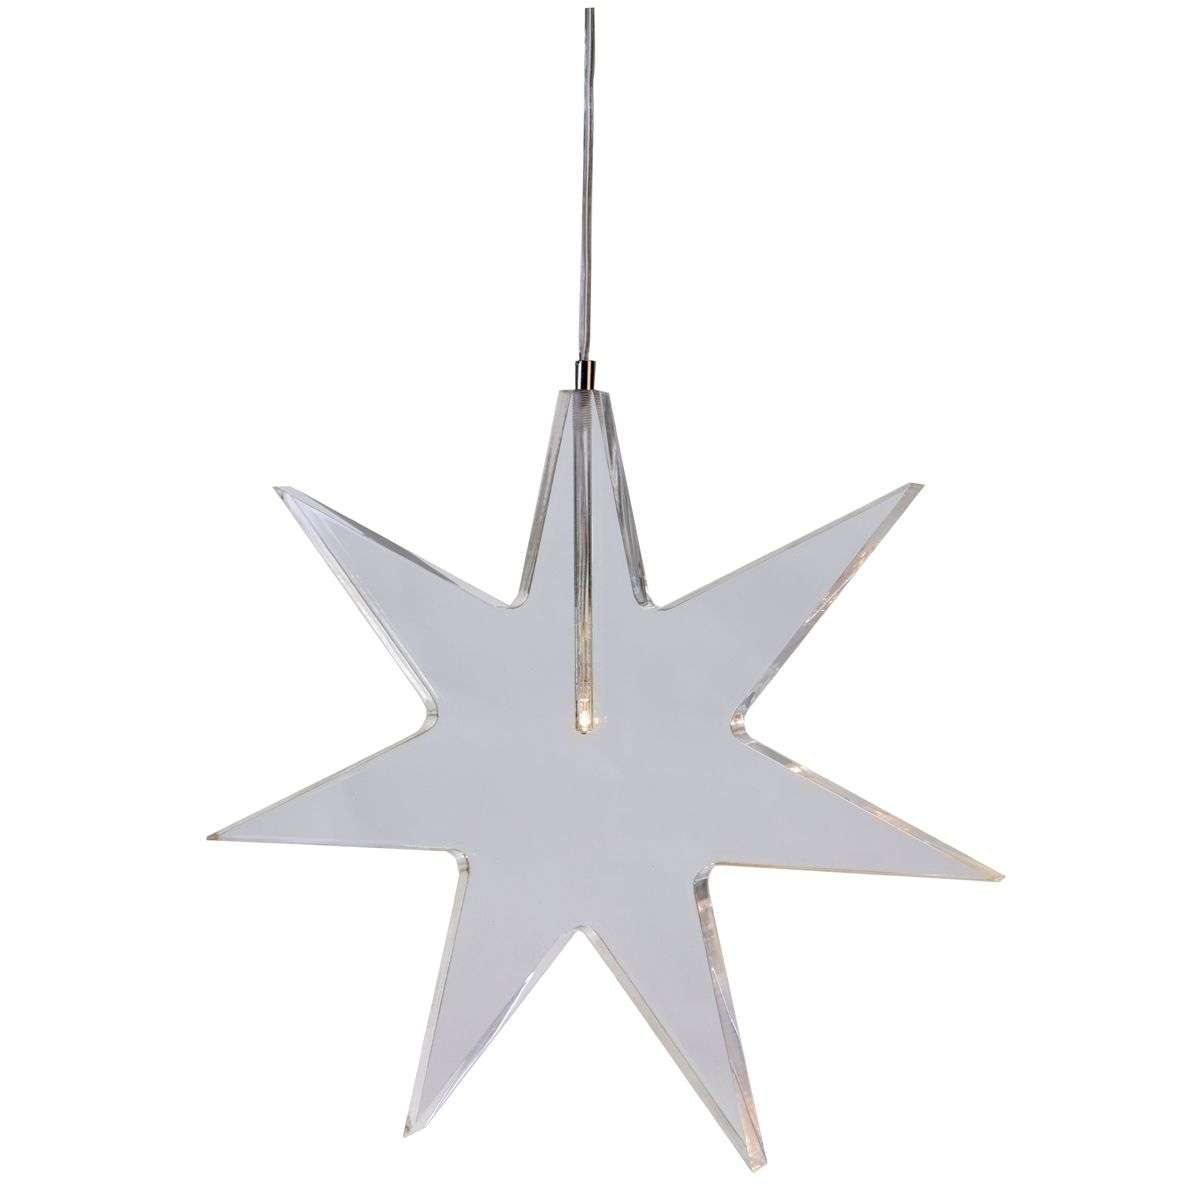 Transparent LED star decorative light Karla-1522505-31